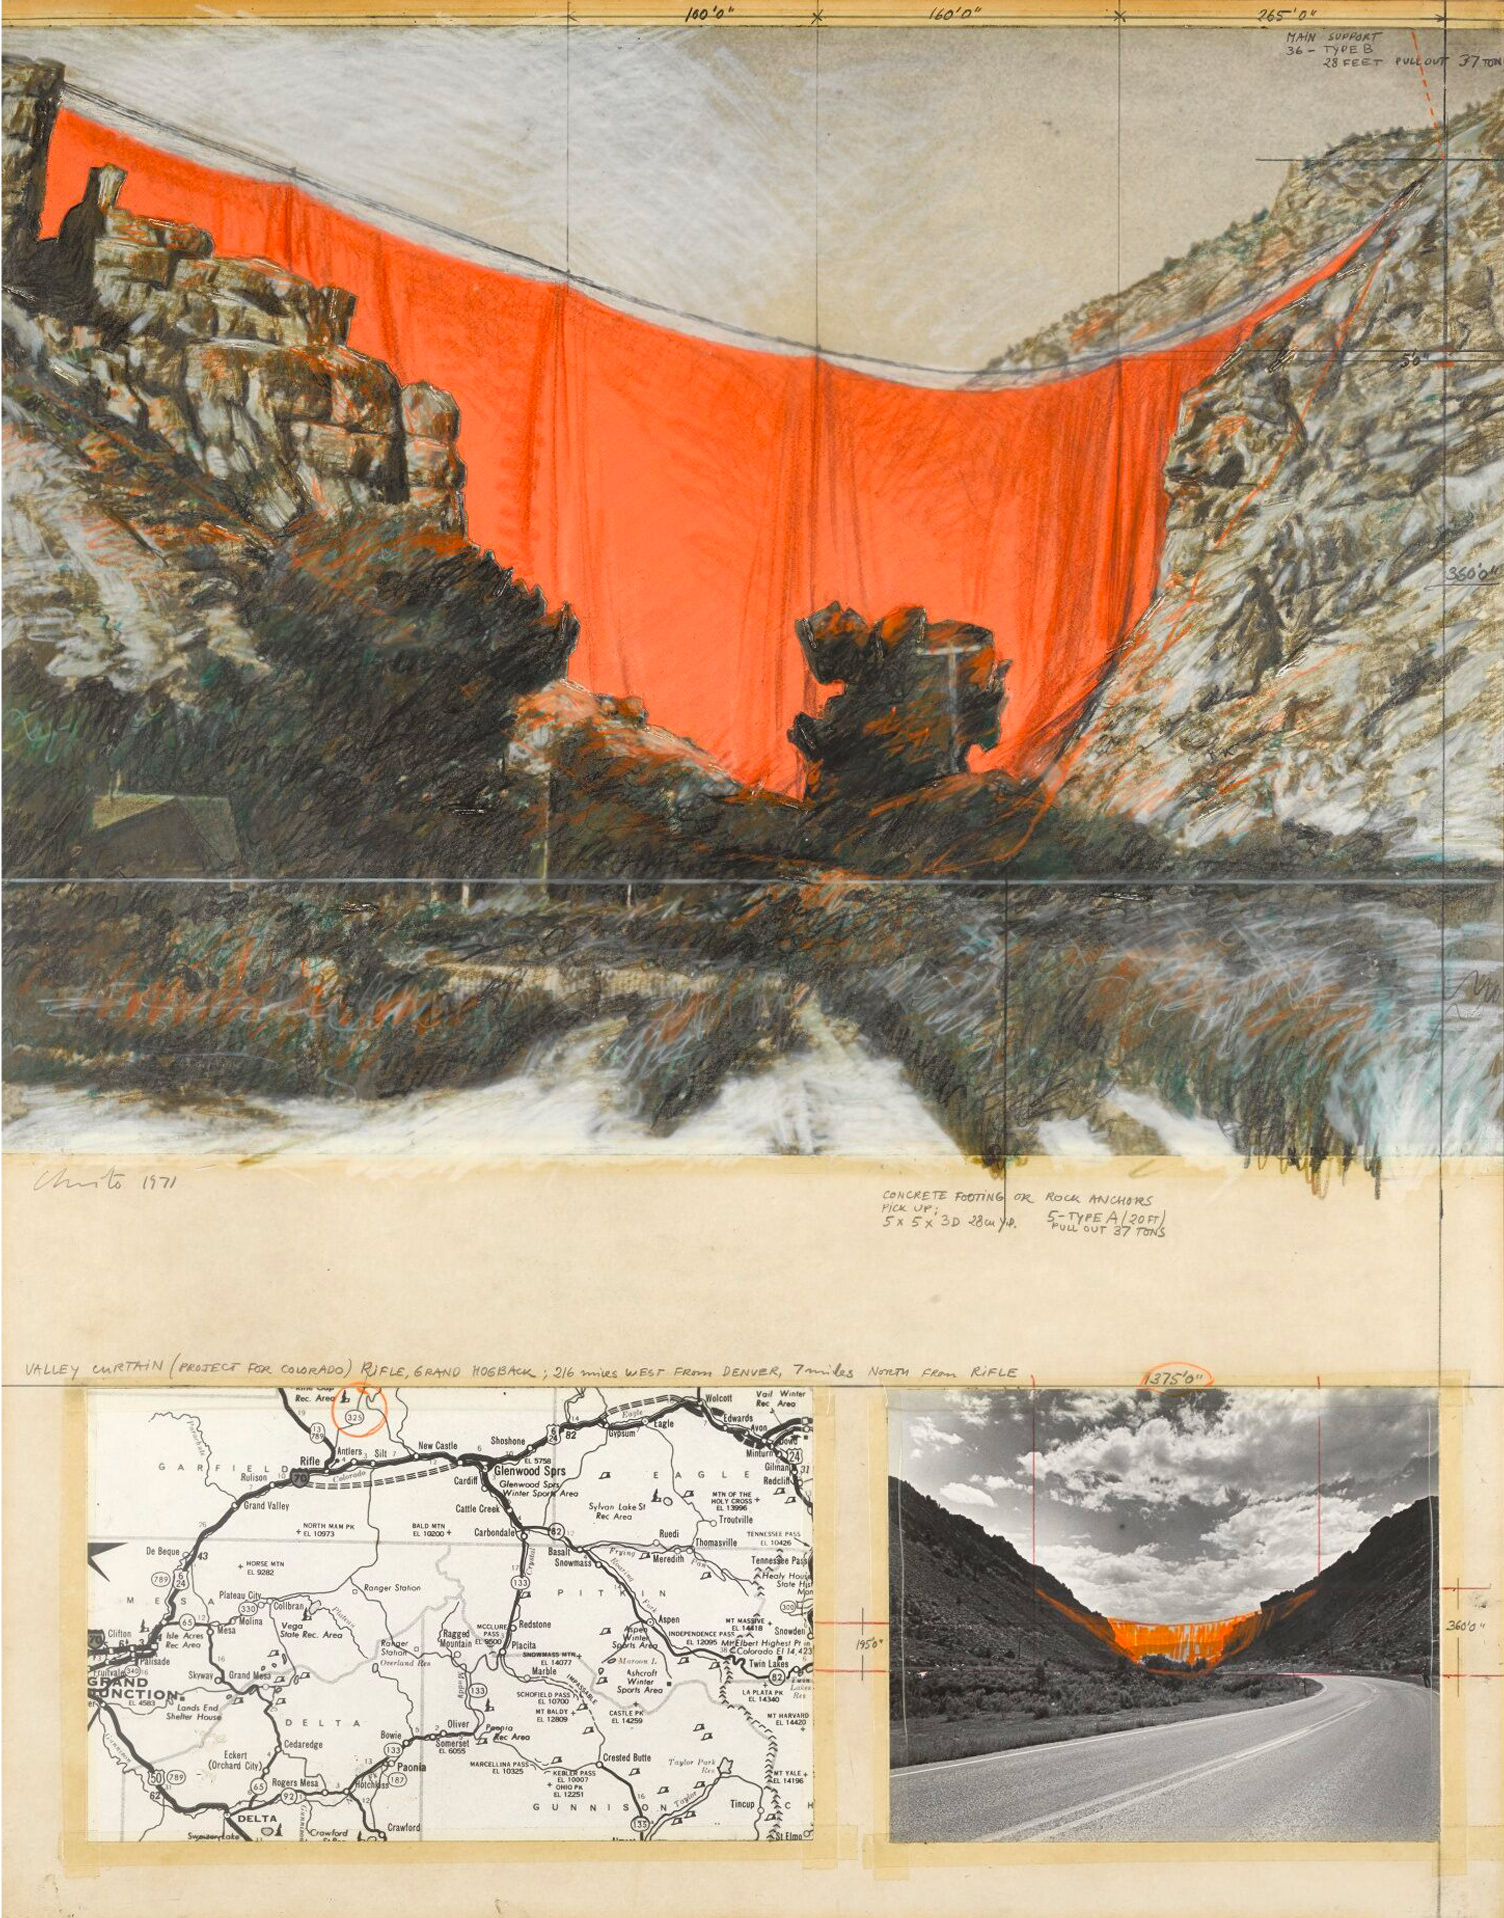 Christo. Valley Curtain, Project for Colorado, Rifle, Grand Hogback (1971)